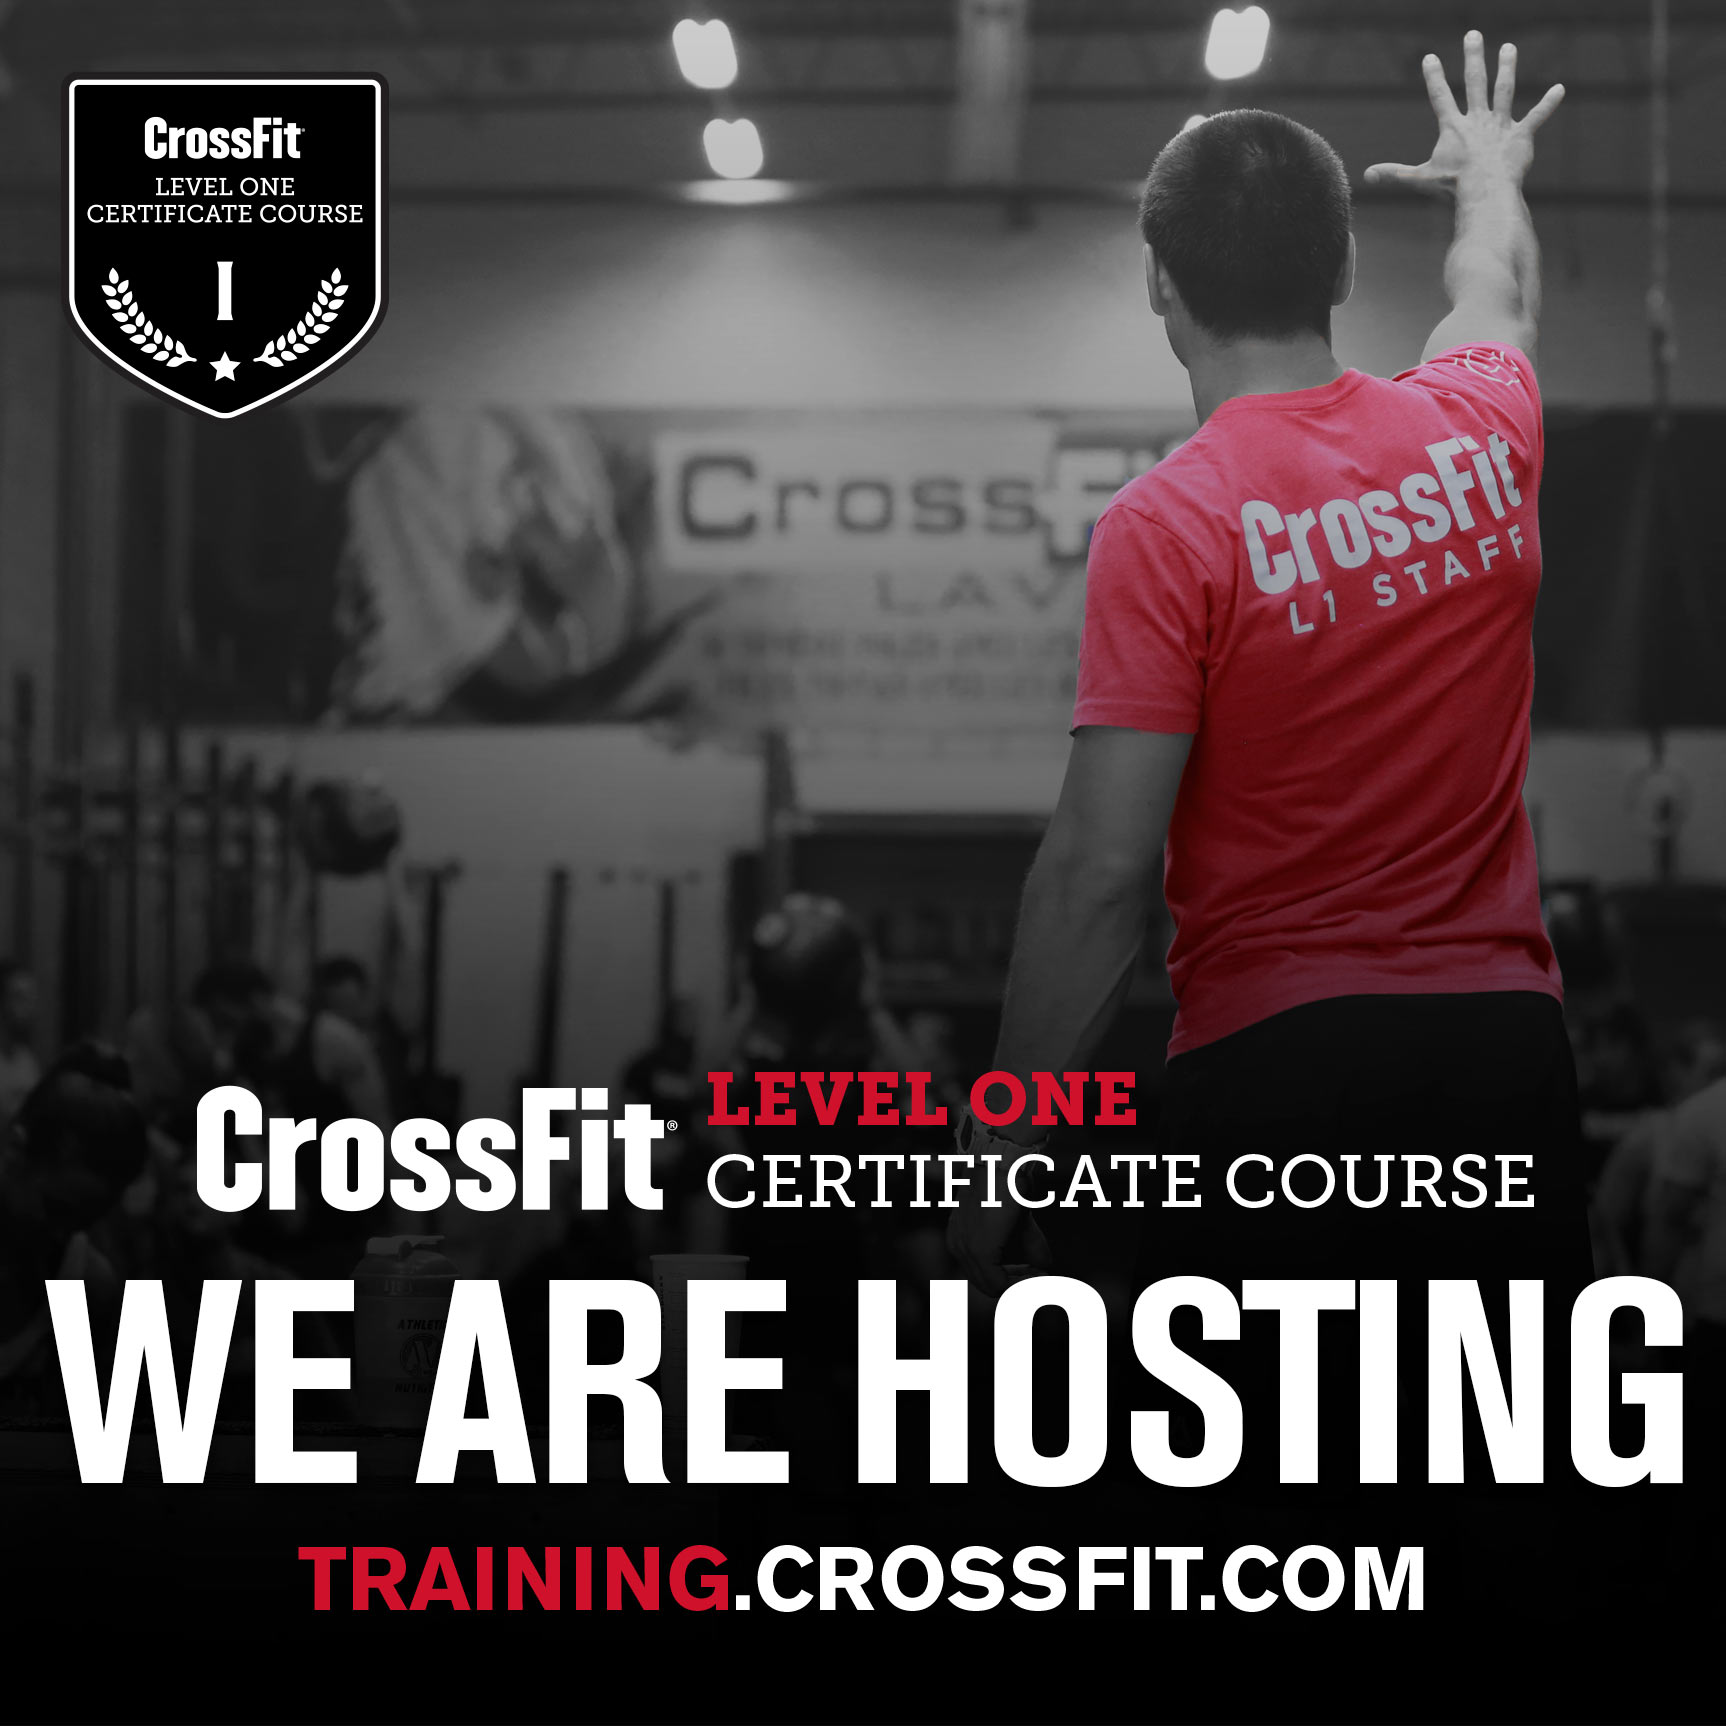 CrossFit Level 1 Seminar- Social Media Marketing Graphic 2.jpg